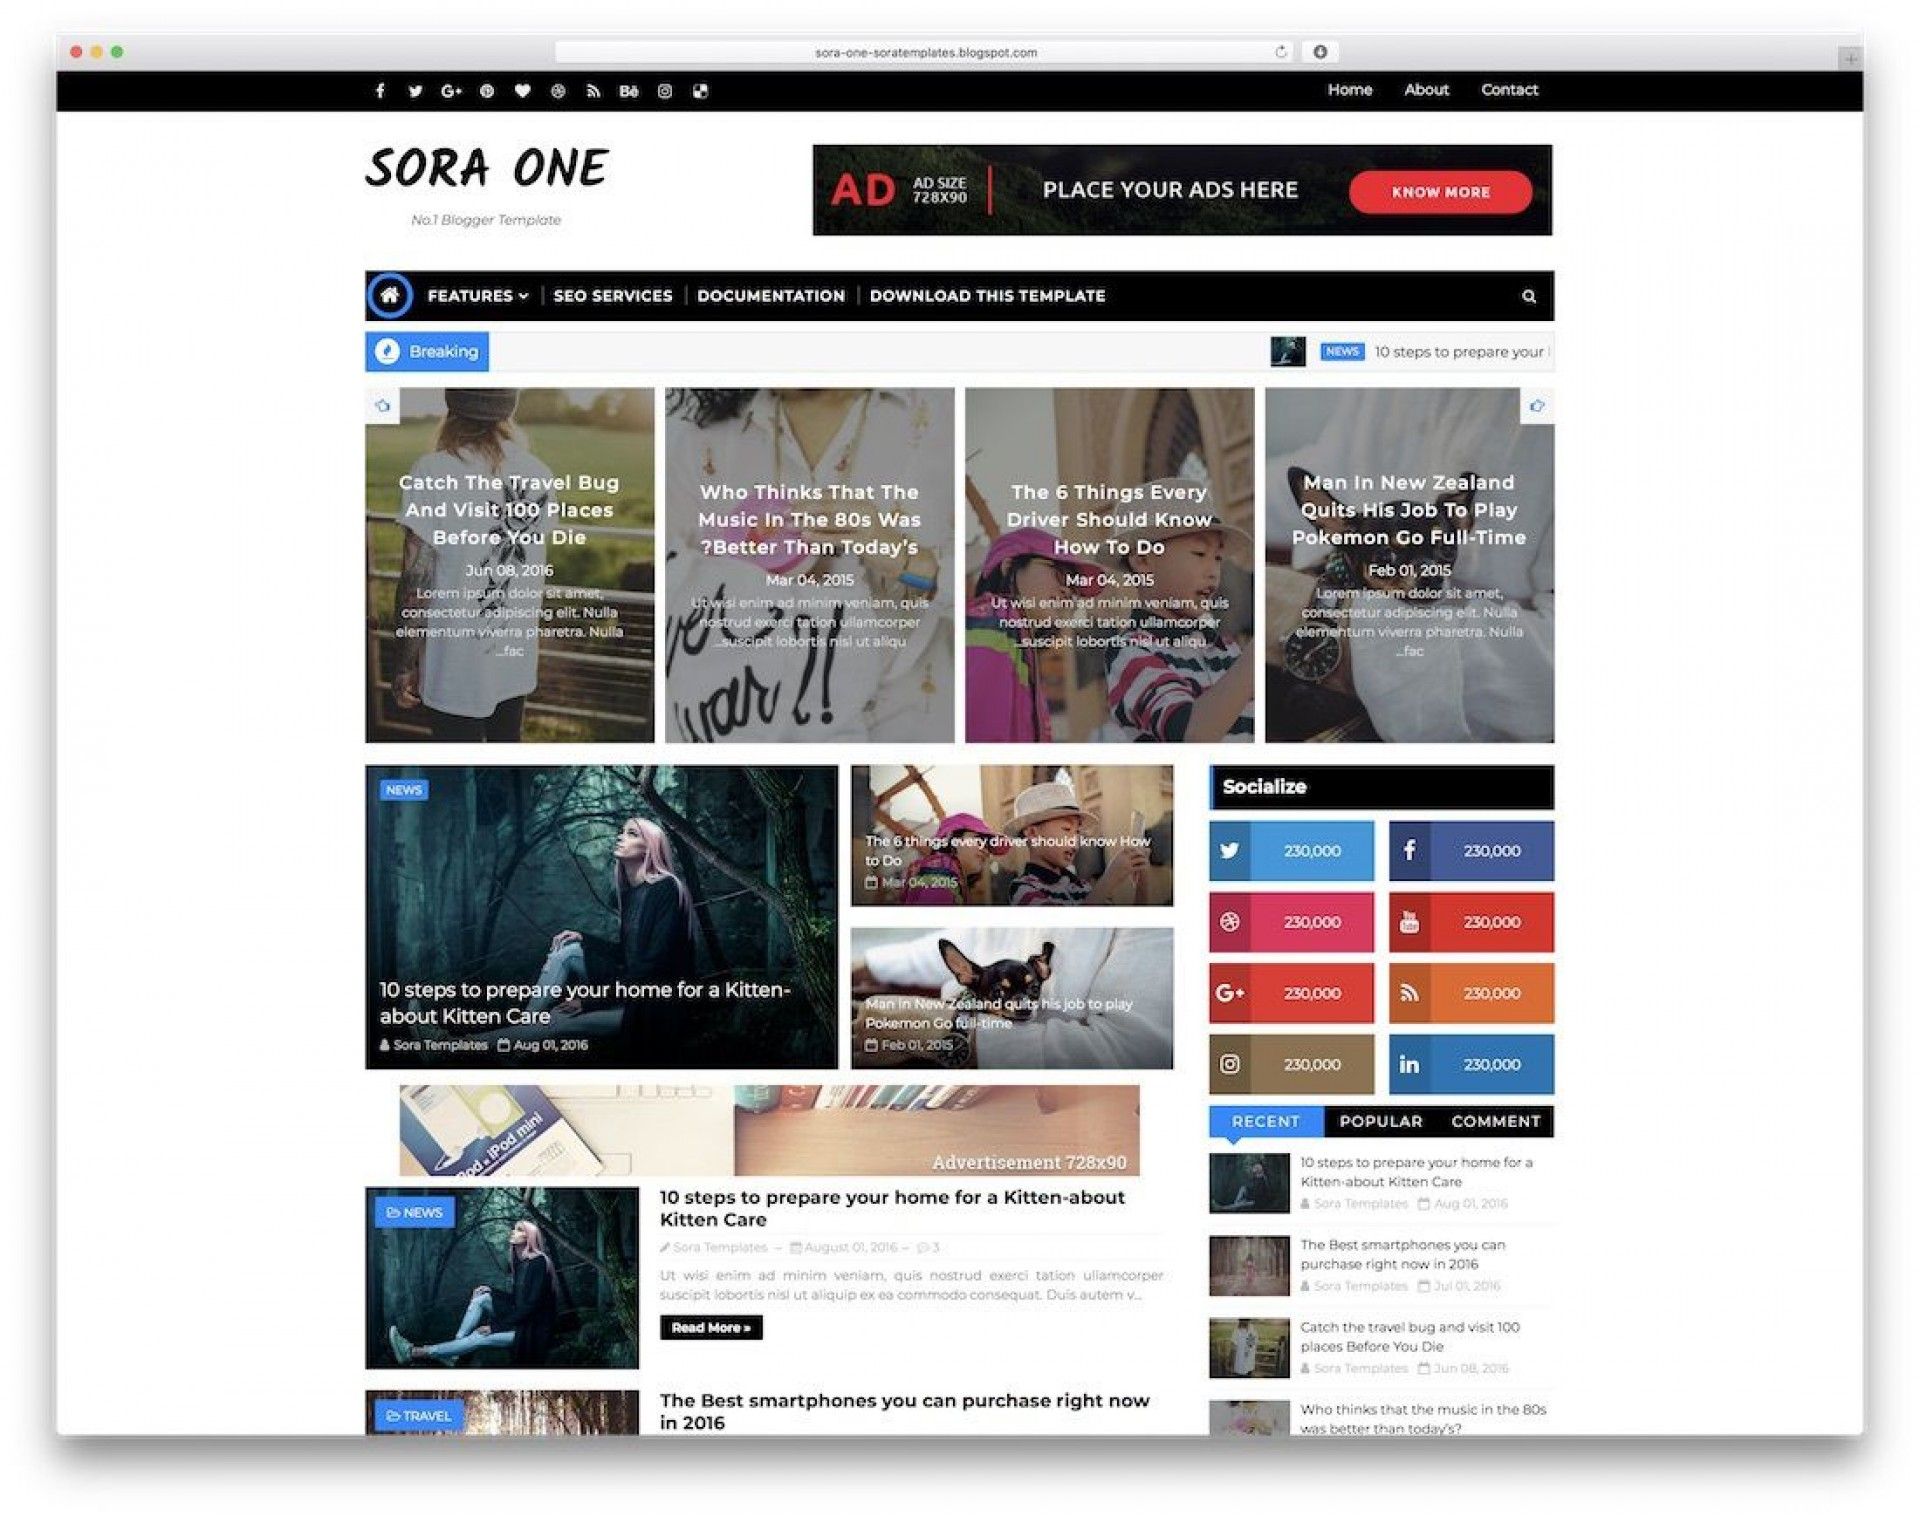 009 Marvelou Best Free Responsive Blogger Template Inspiration  2019 Mobile Friendly Top1920